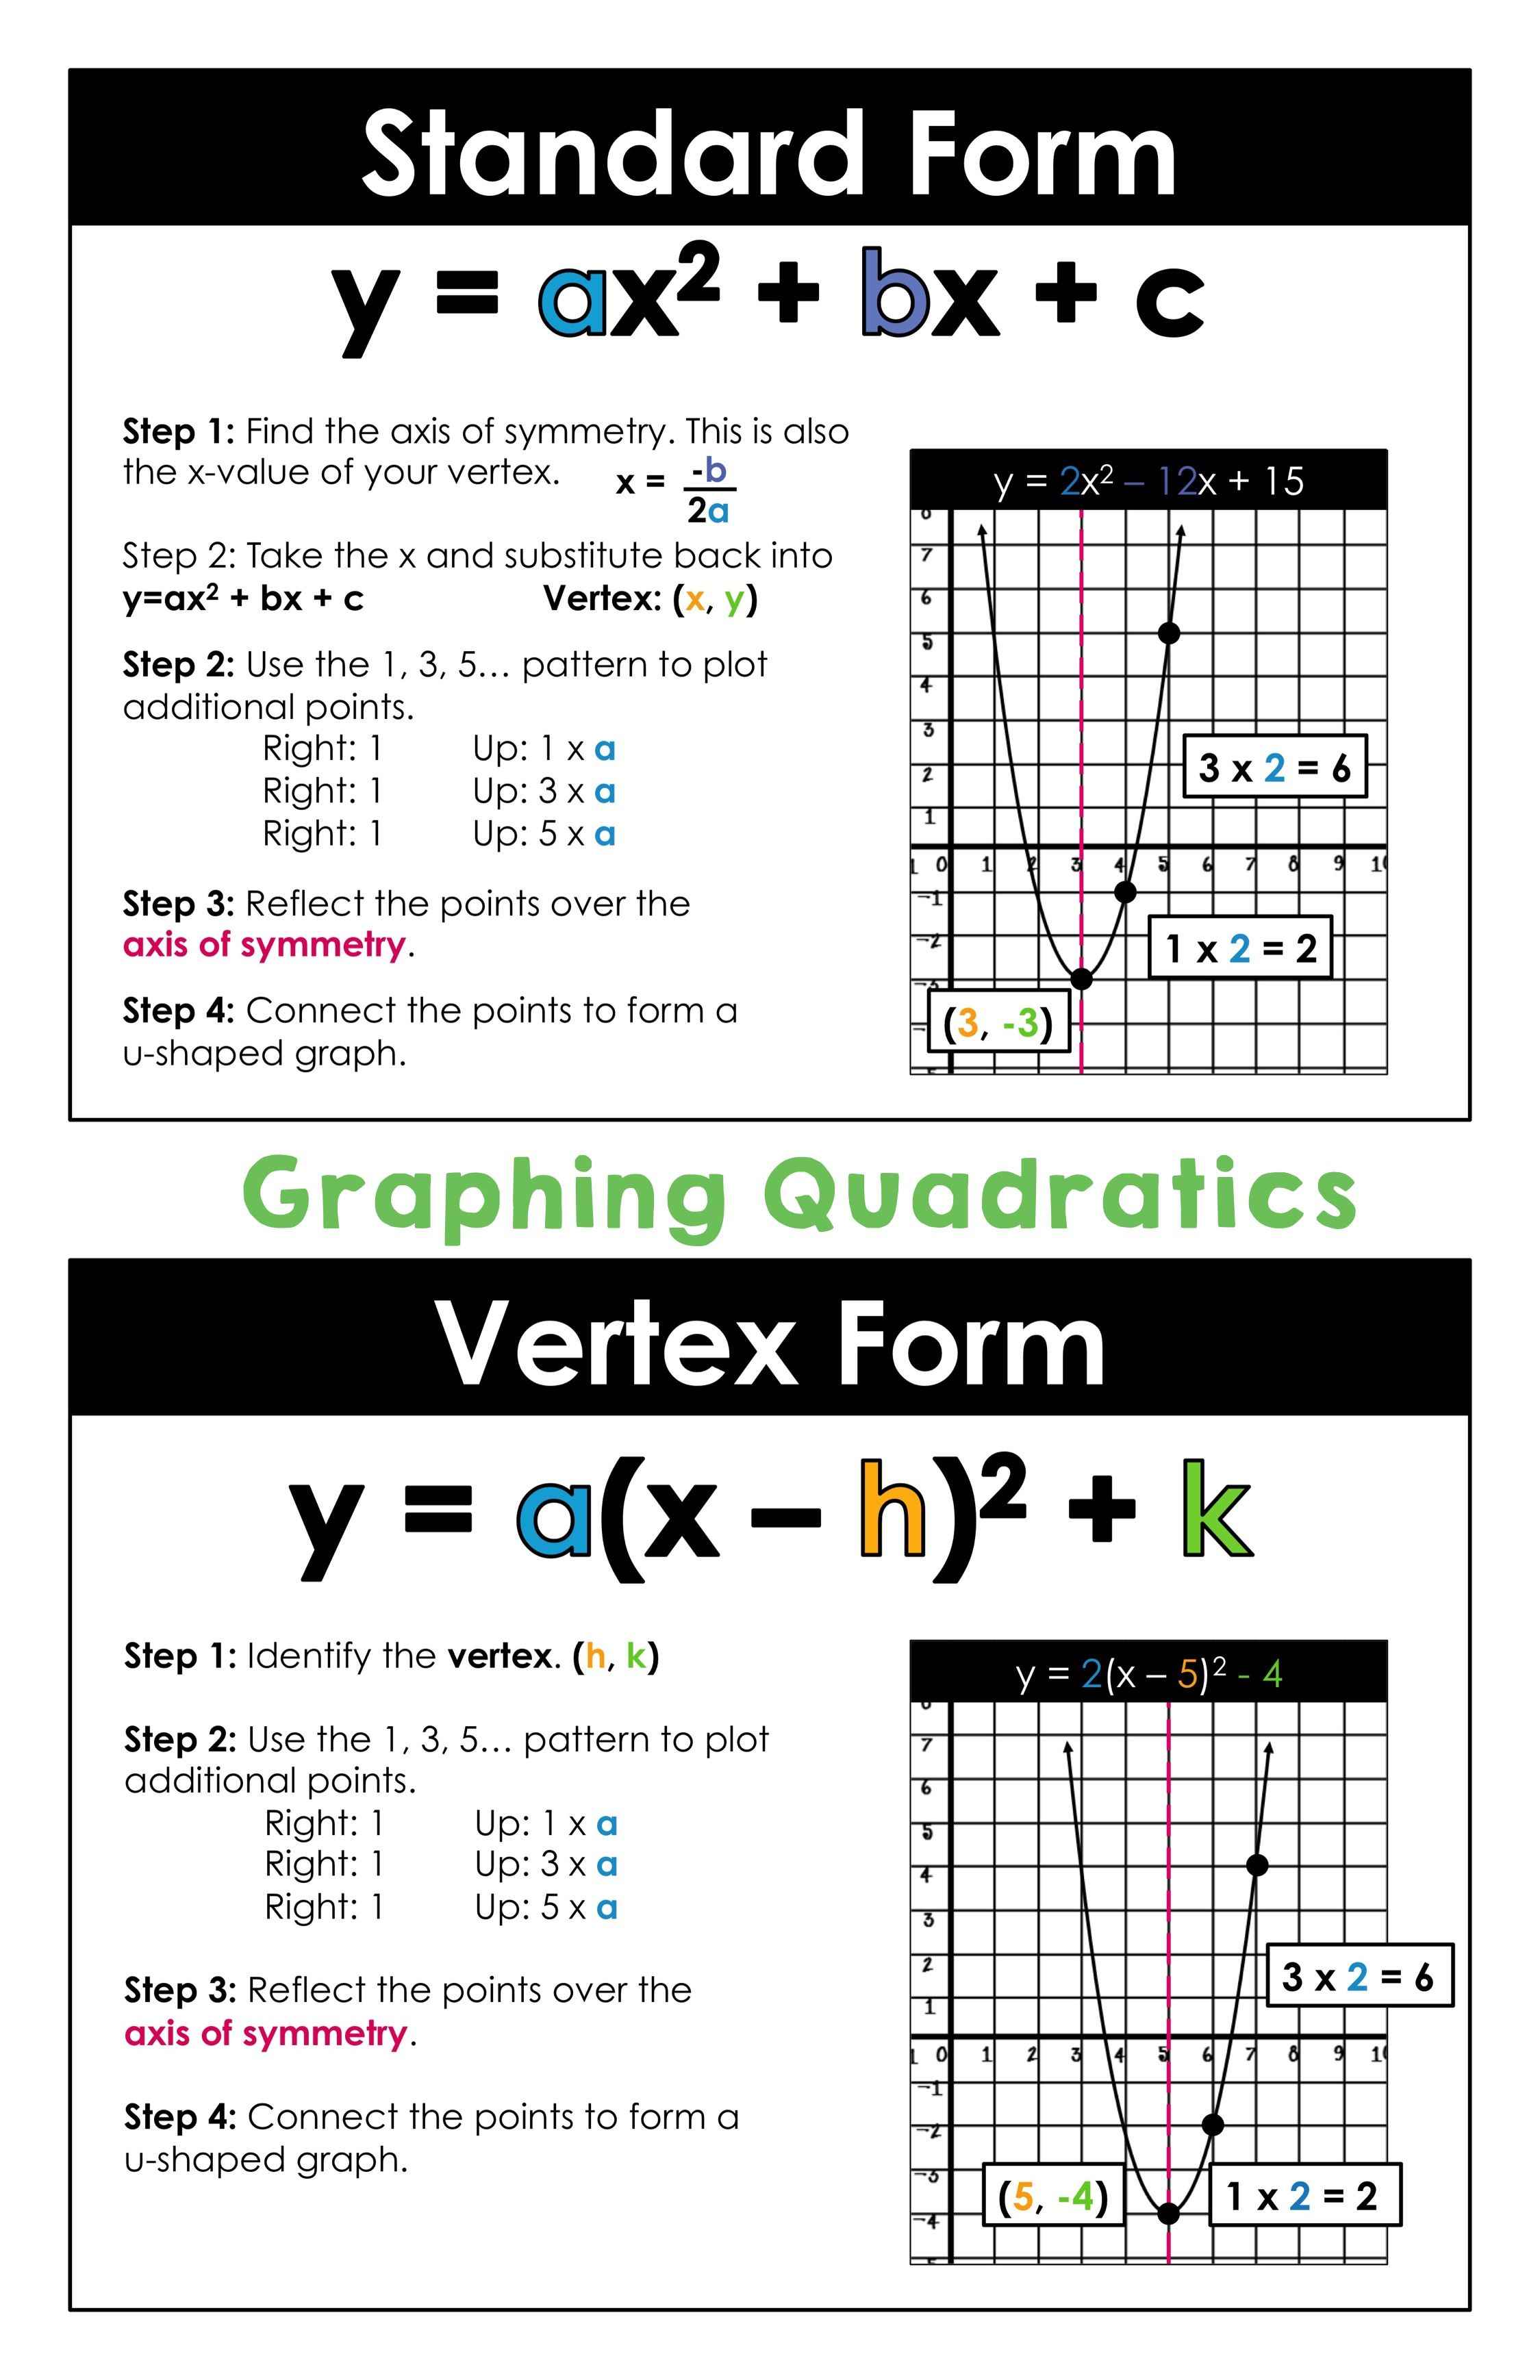 Graphing Quadratic Functions Posters Sat Math Pinterest